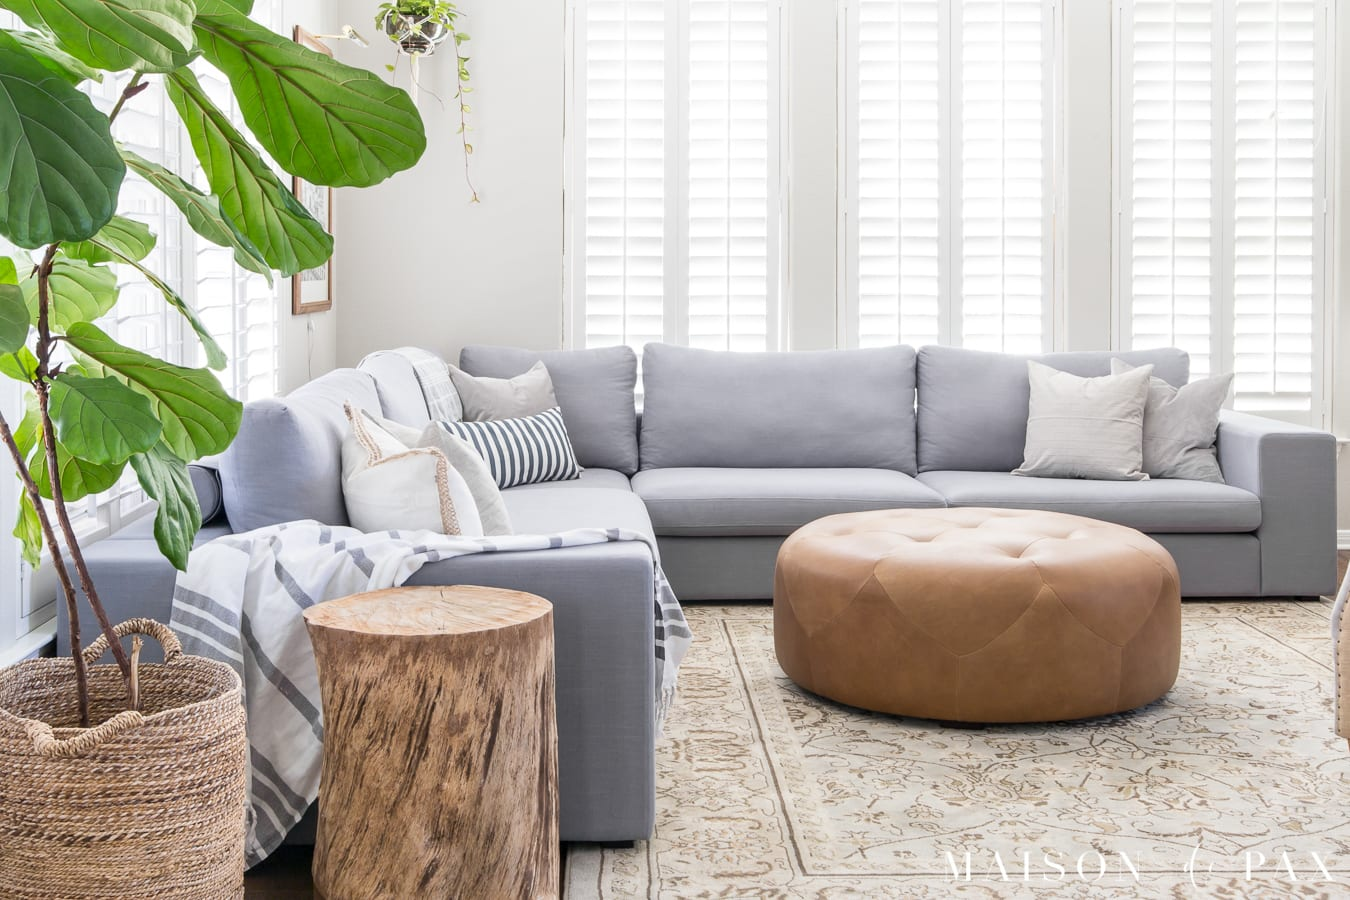 5 Tips For Creating A Light, Bright Living Space #livingroomdecor  #sectionalsofa #neutraldecor